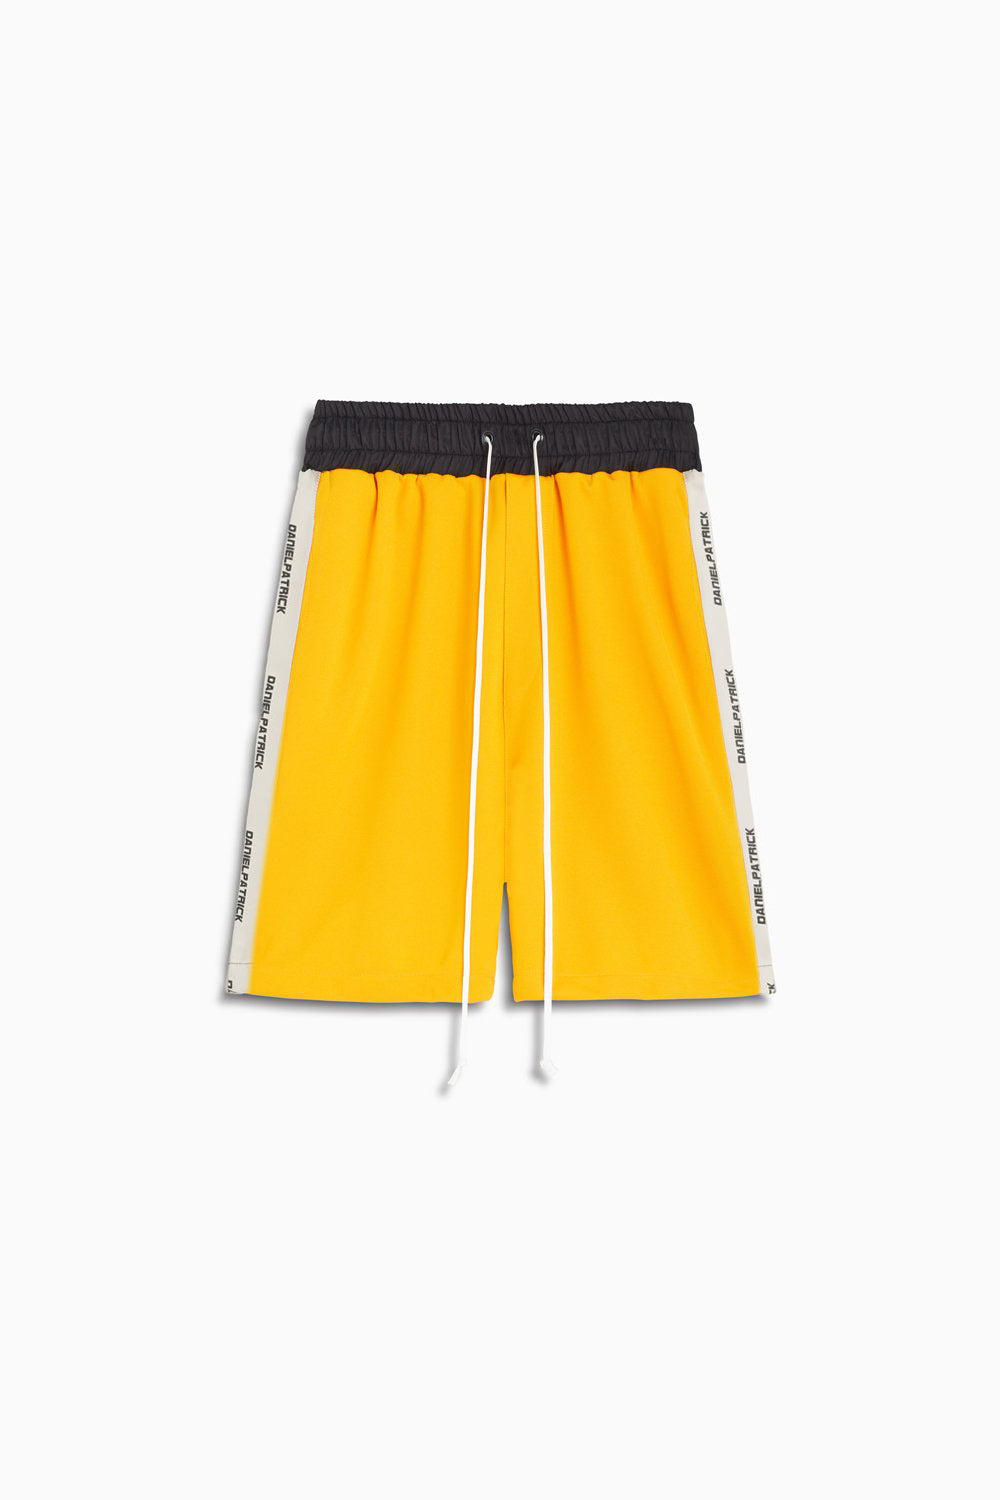 roaming gym short / yellow + ivory